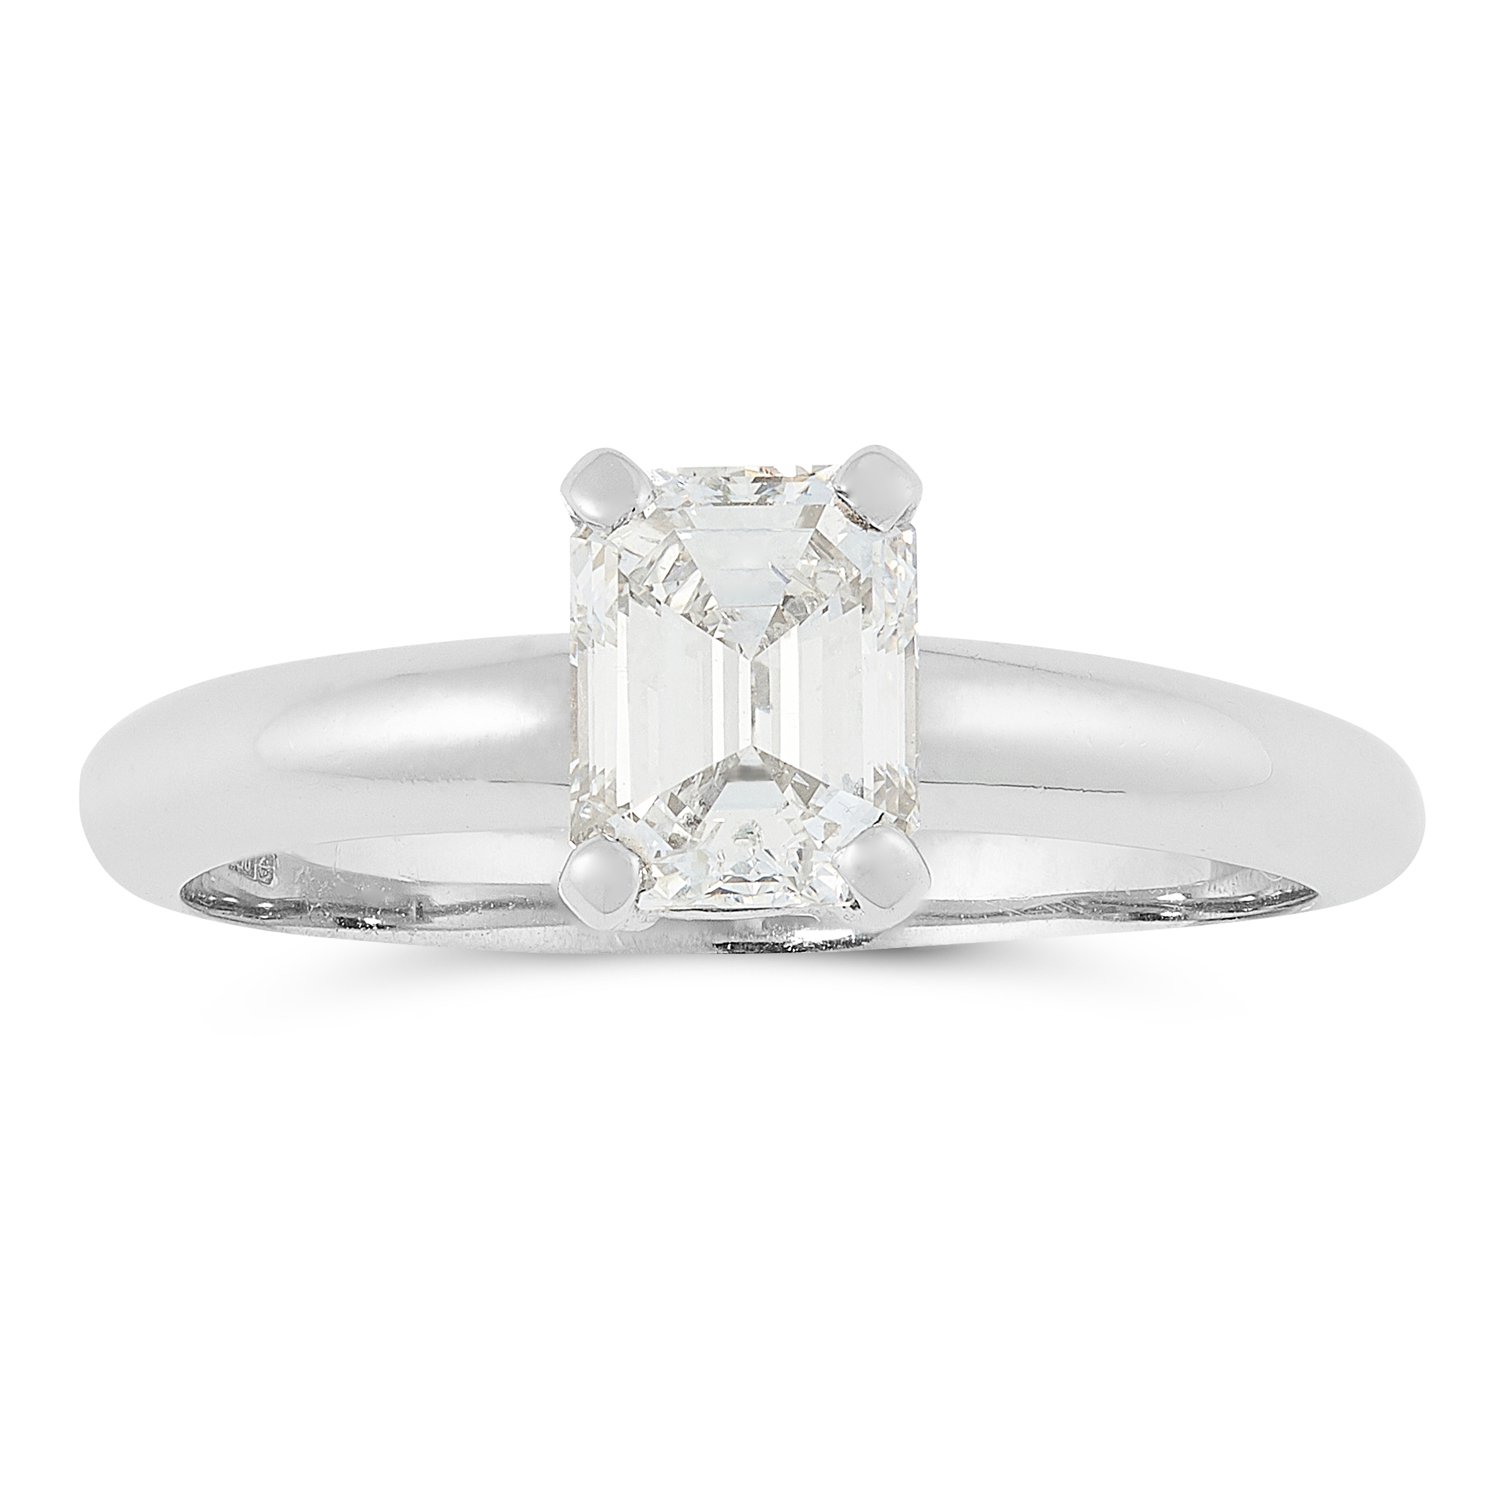 A DIAMOND SOLITAIRE RING in platinum, set with an emerald cut diamond of 1.01 carats, British